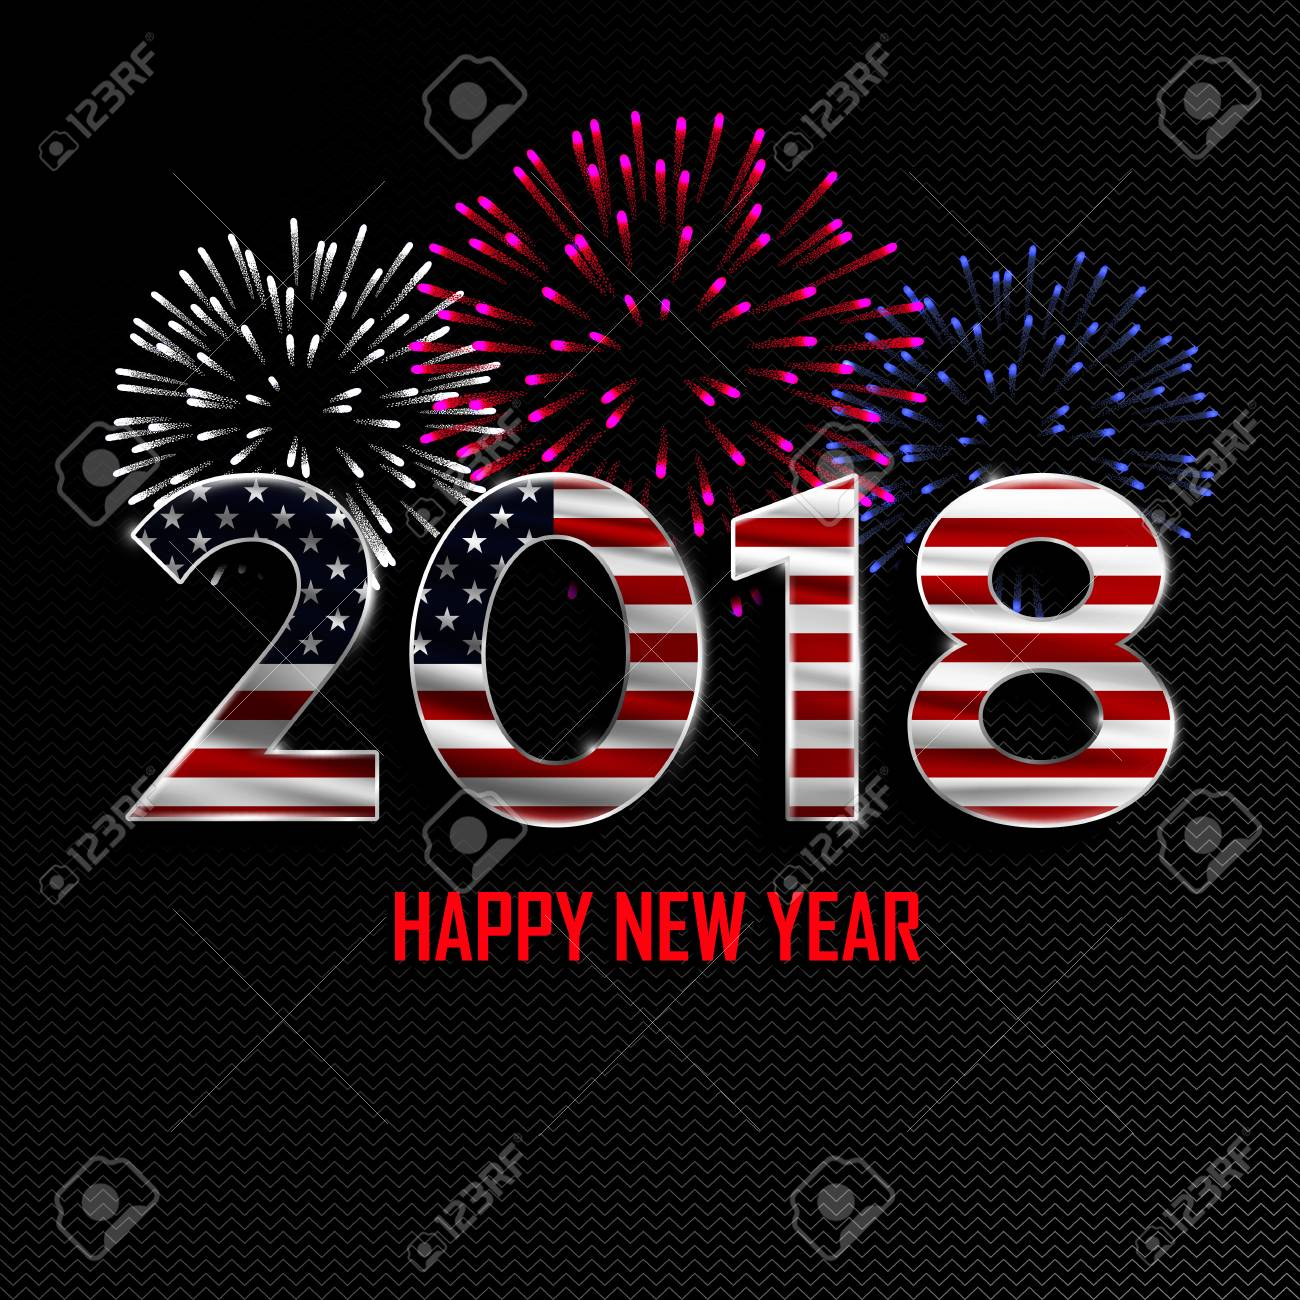 happy new year and merry christmas 2018 new year background with national flag of usa